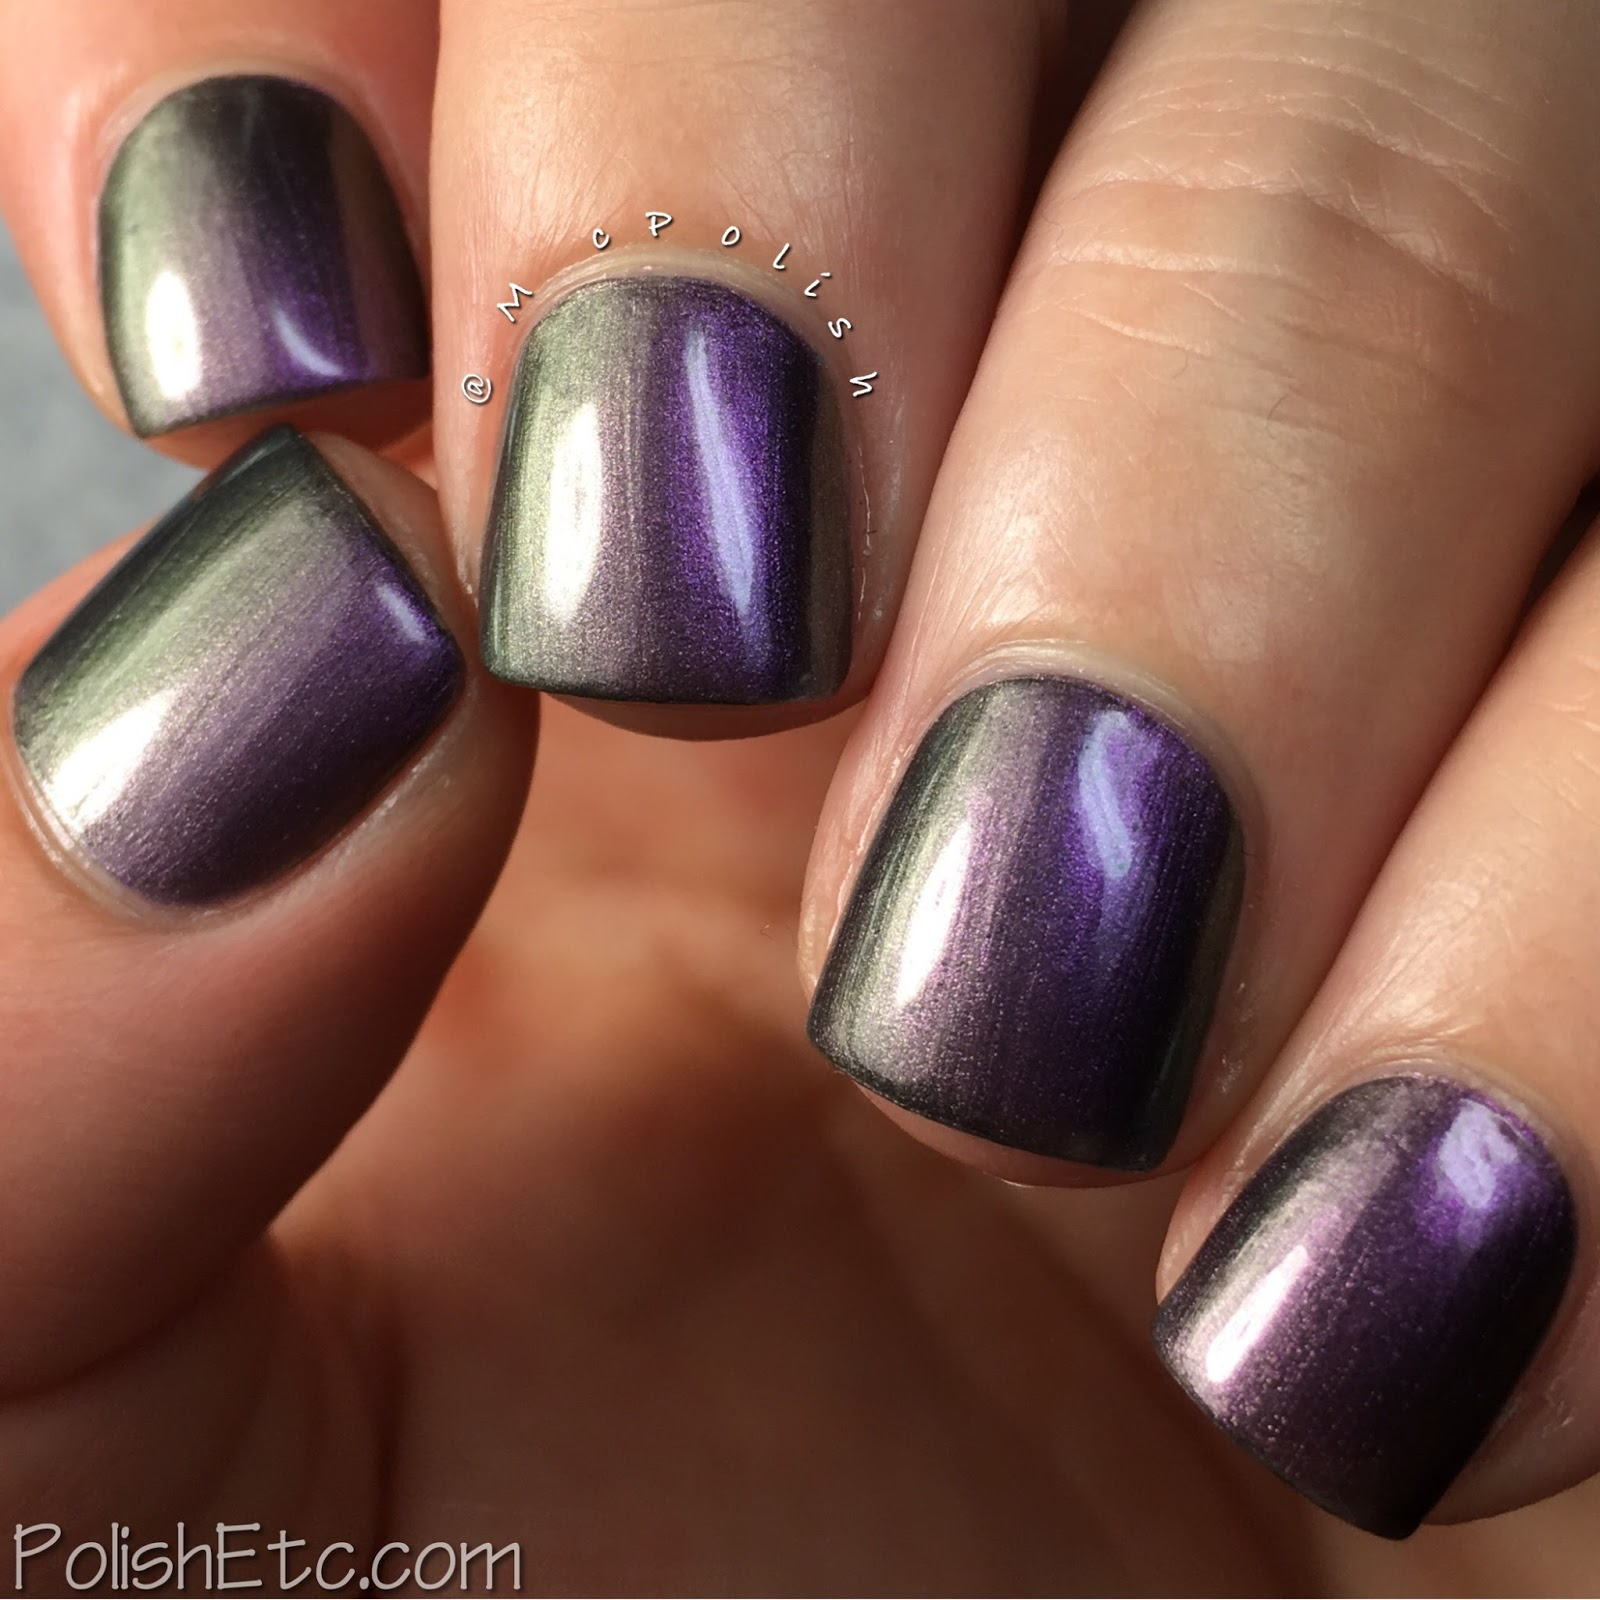 Violet Nails for the #31DC2017Weekly - McPolish - Zoya Ki